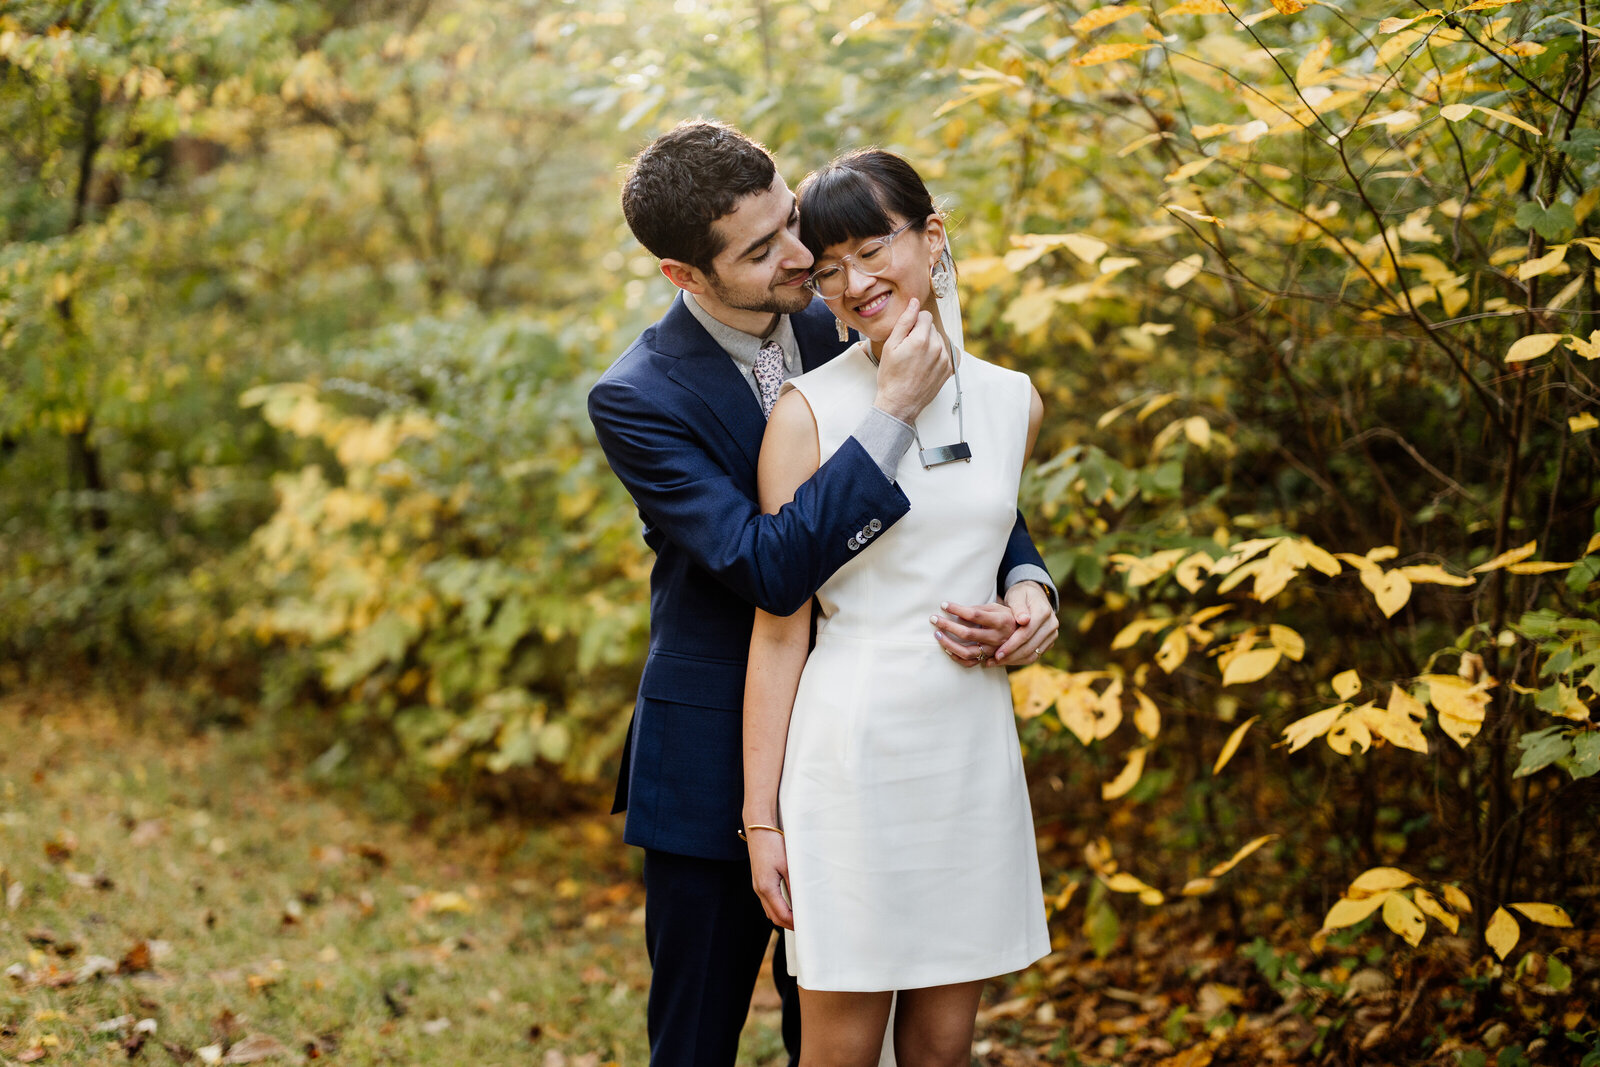 bride and groom hugging in fall leaves